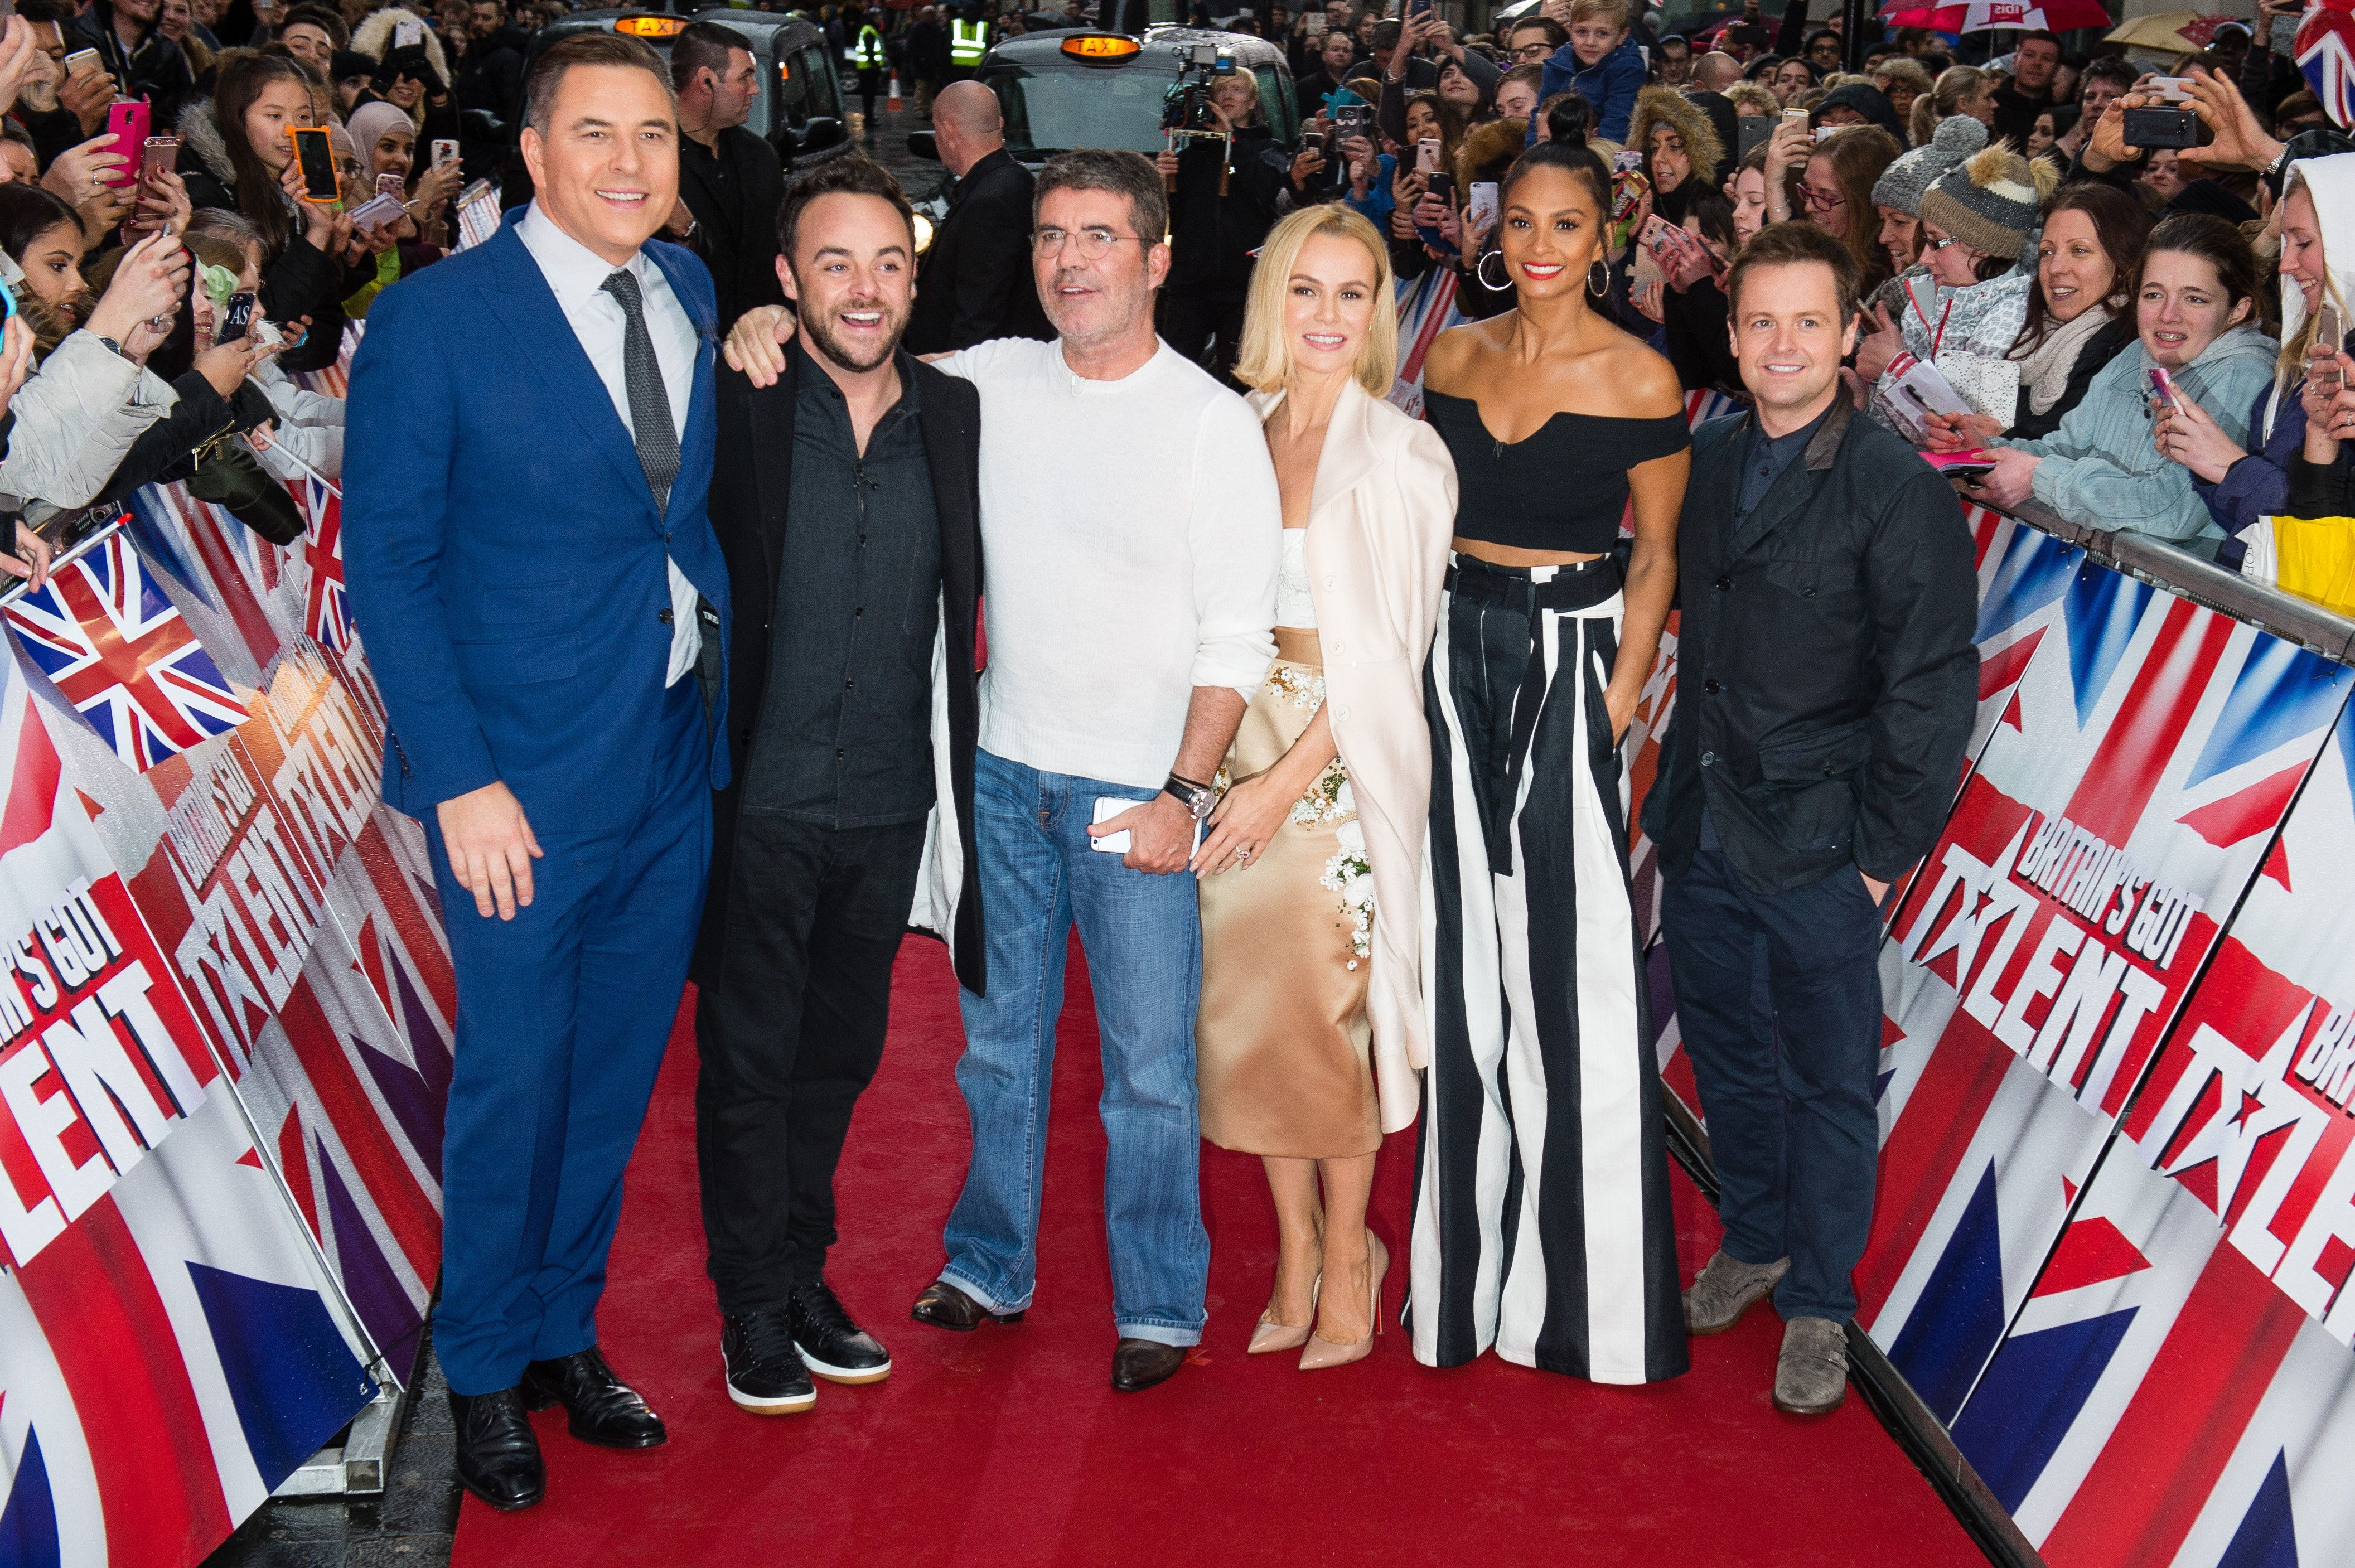 'Britain's Got Talent' In 'Fake' Row As Prankster Films Undercover At